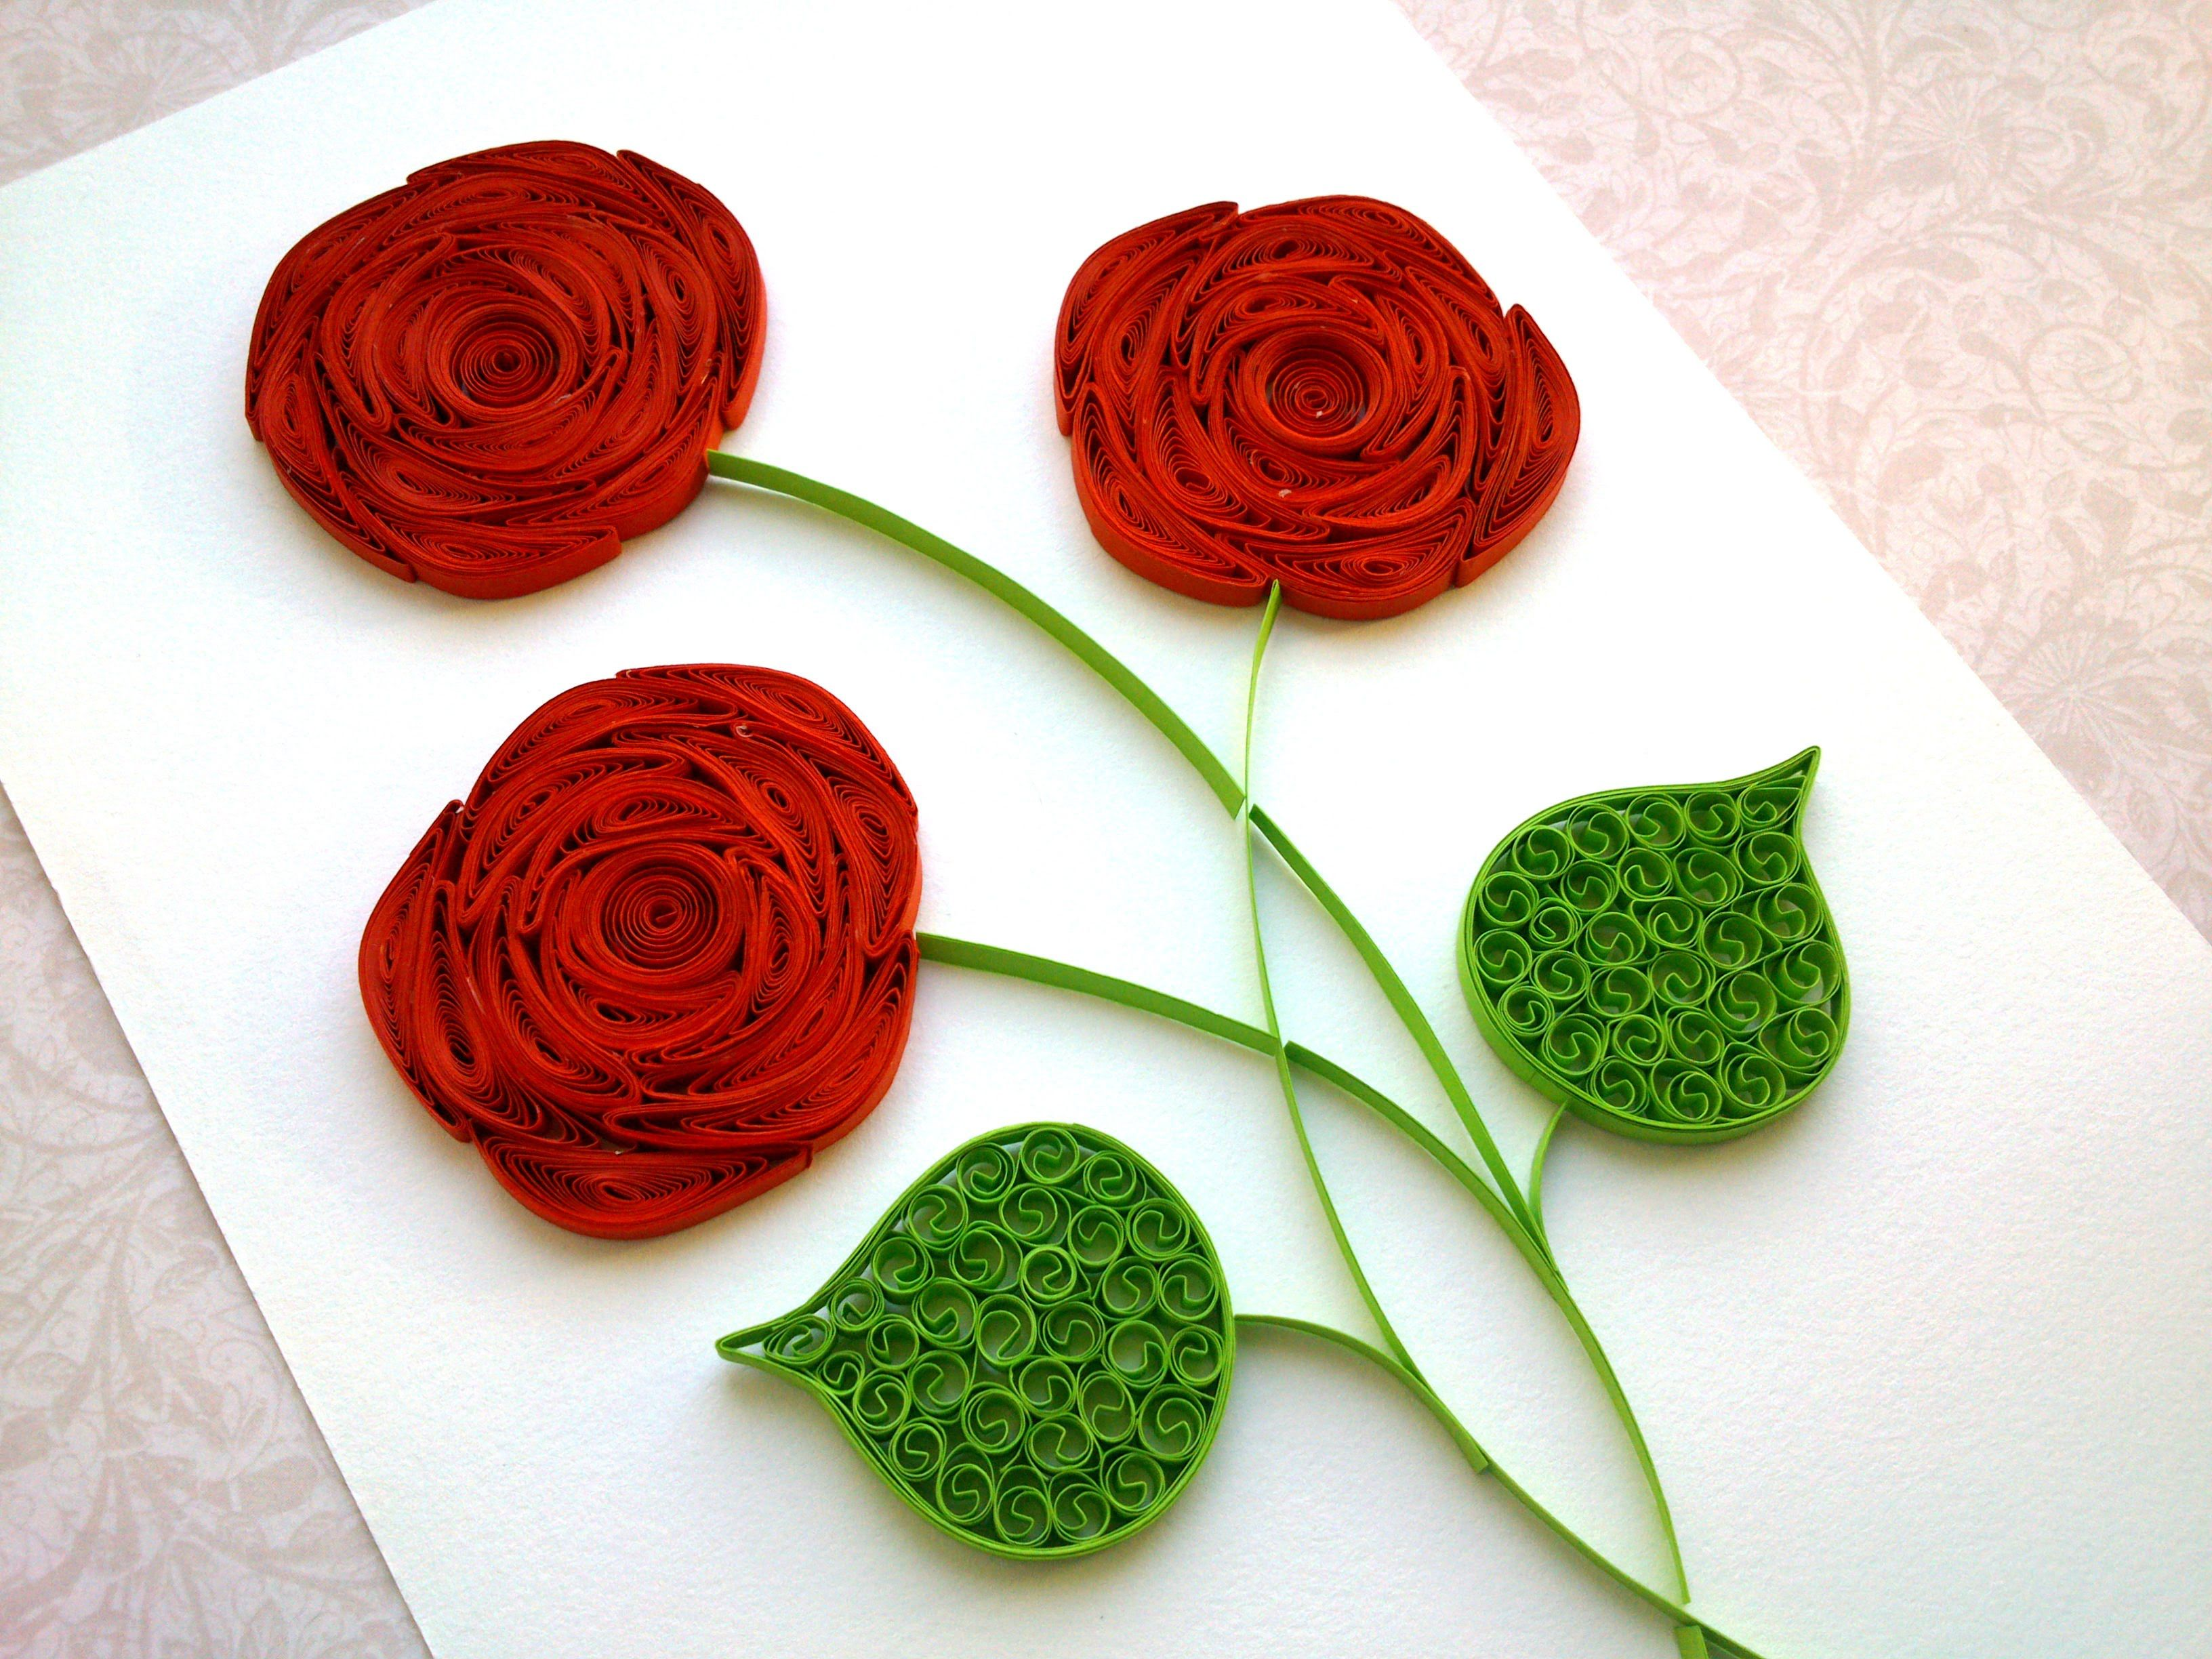 Quilling Rose Tutorial: How To Make A Rose With A Paper Stripe Quilling